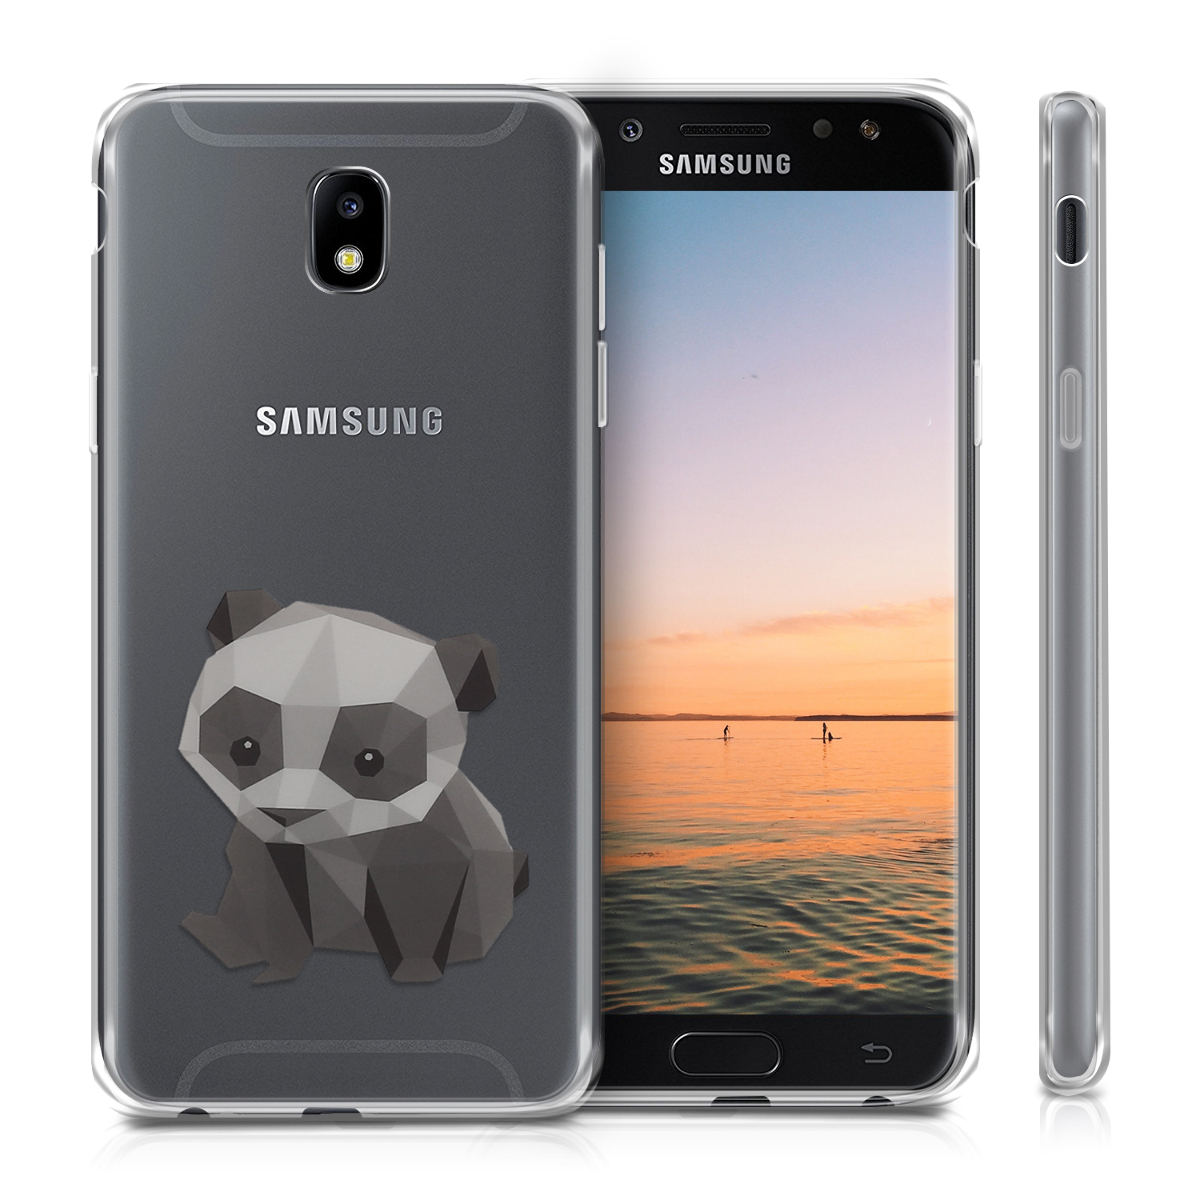 cover for samsung galaxy j5 2017 duos case cover mobile phone protective ebay. Black Bedroom Furniture Sets. Home Design Ideas